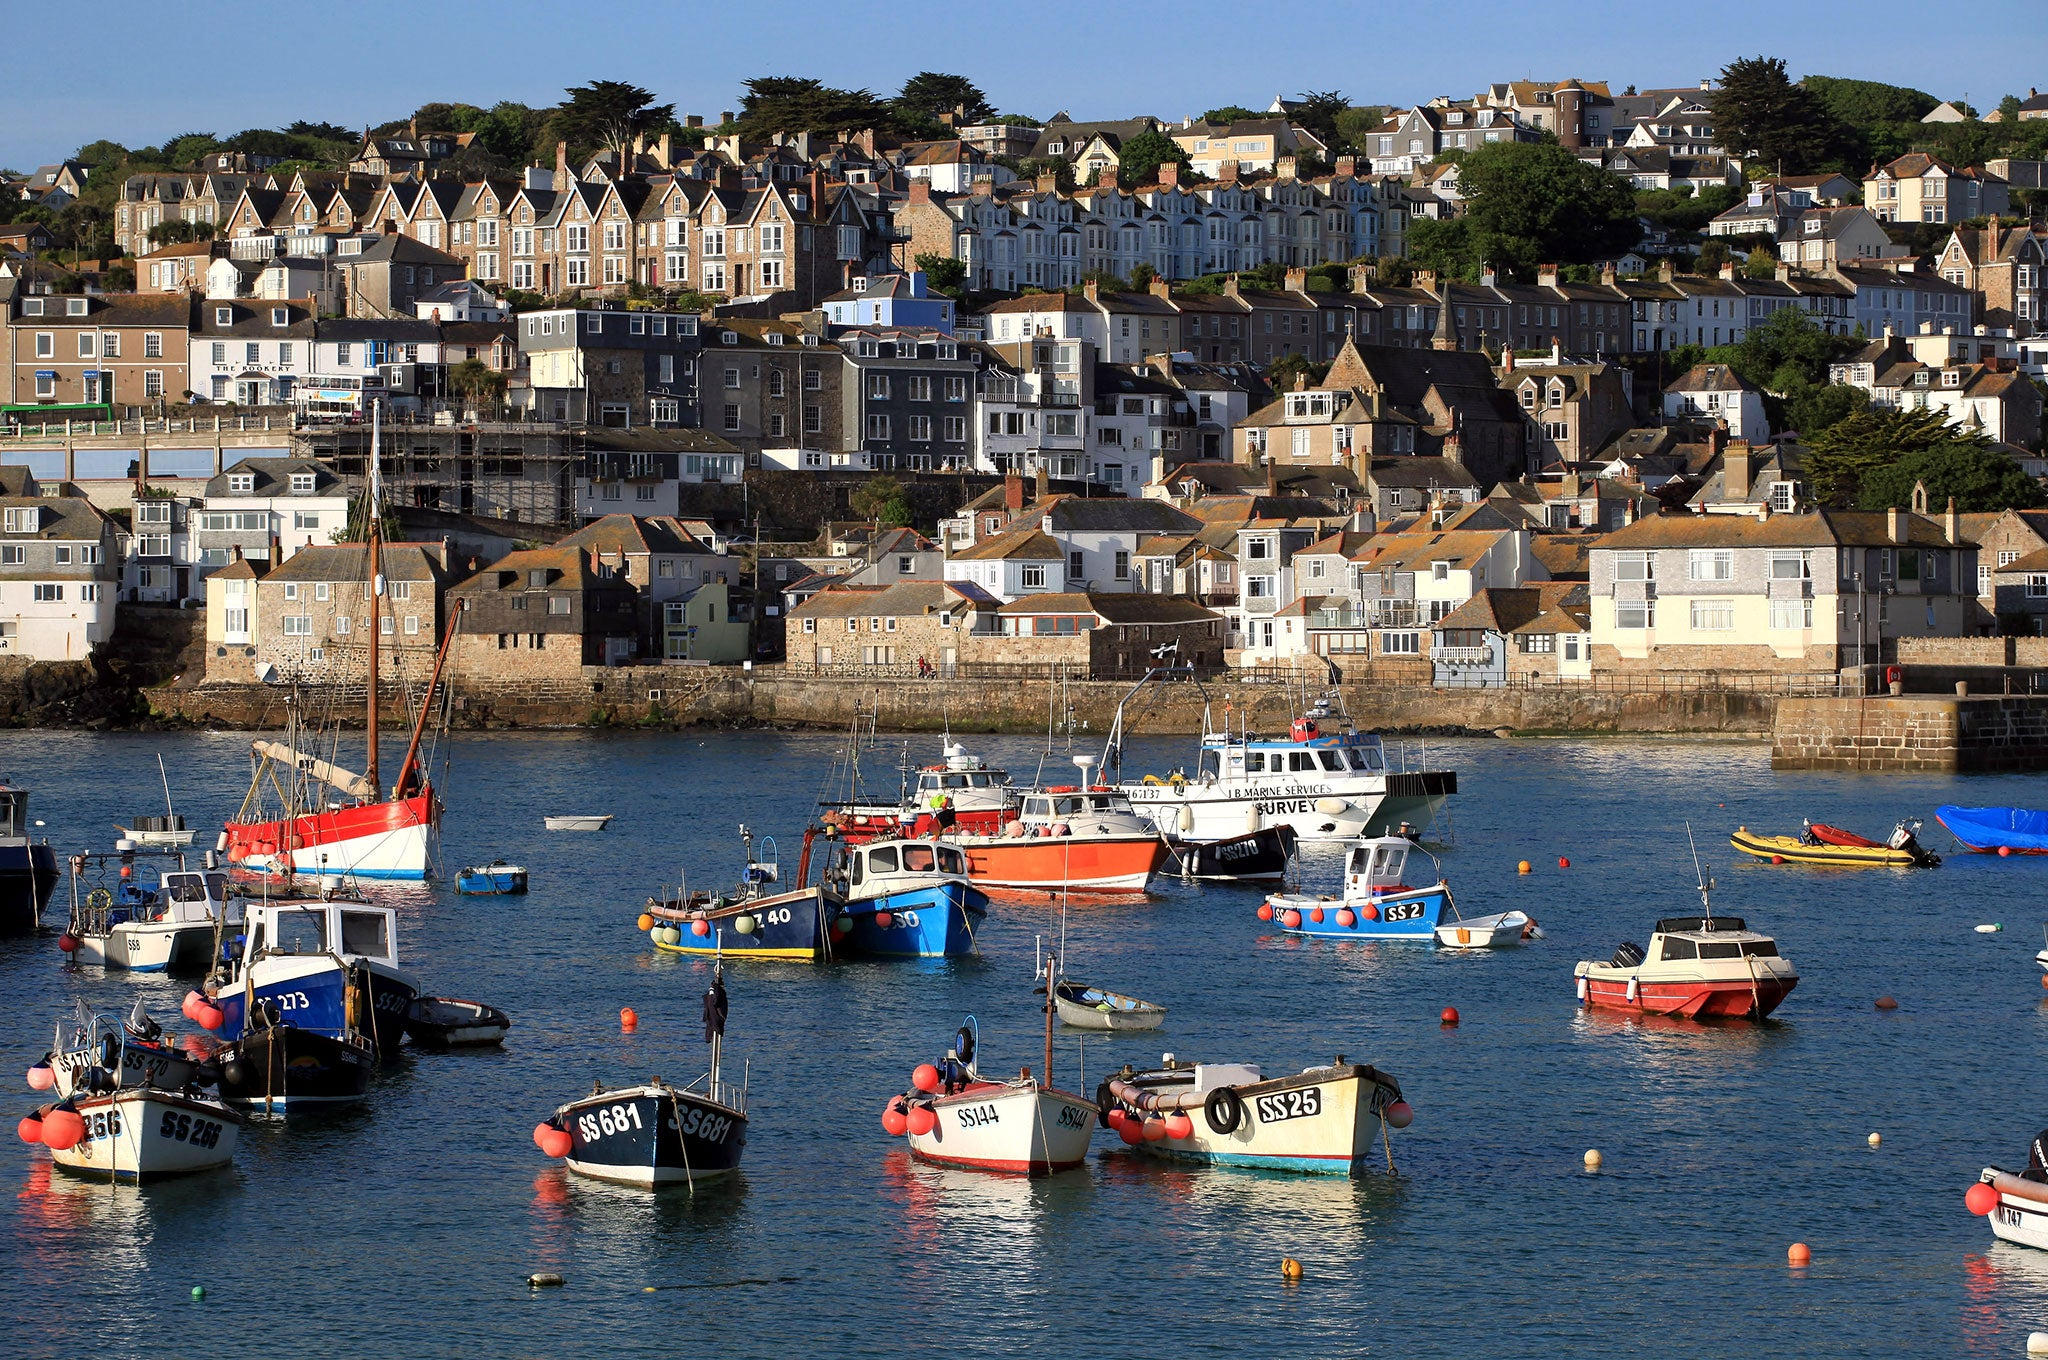 st ives muslim personals It's the light that's what always strikes visitors who come to st ives jutting out from the coastline, the town, which is surrounded by beaches, is bathed in a soft, romantic glow that makes everything look like instagram-perfection: no filter necessary this is the reason why many prominent.